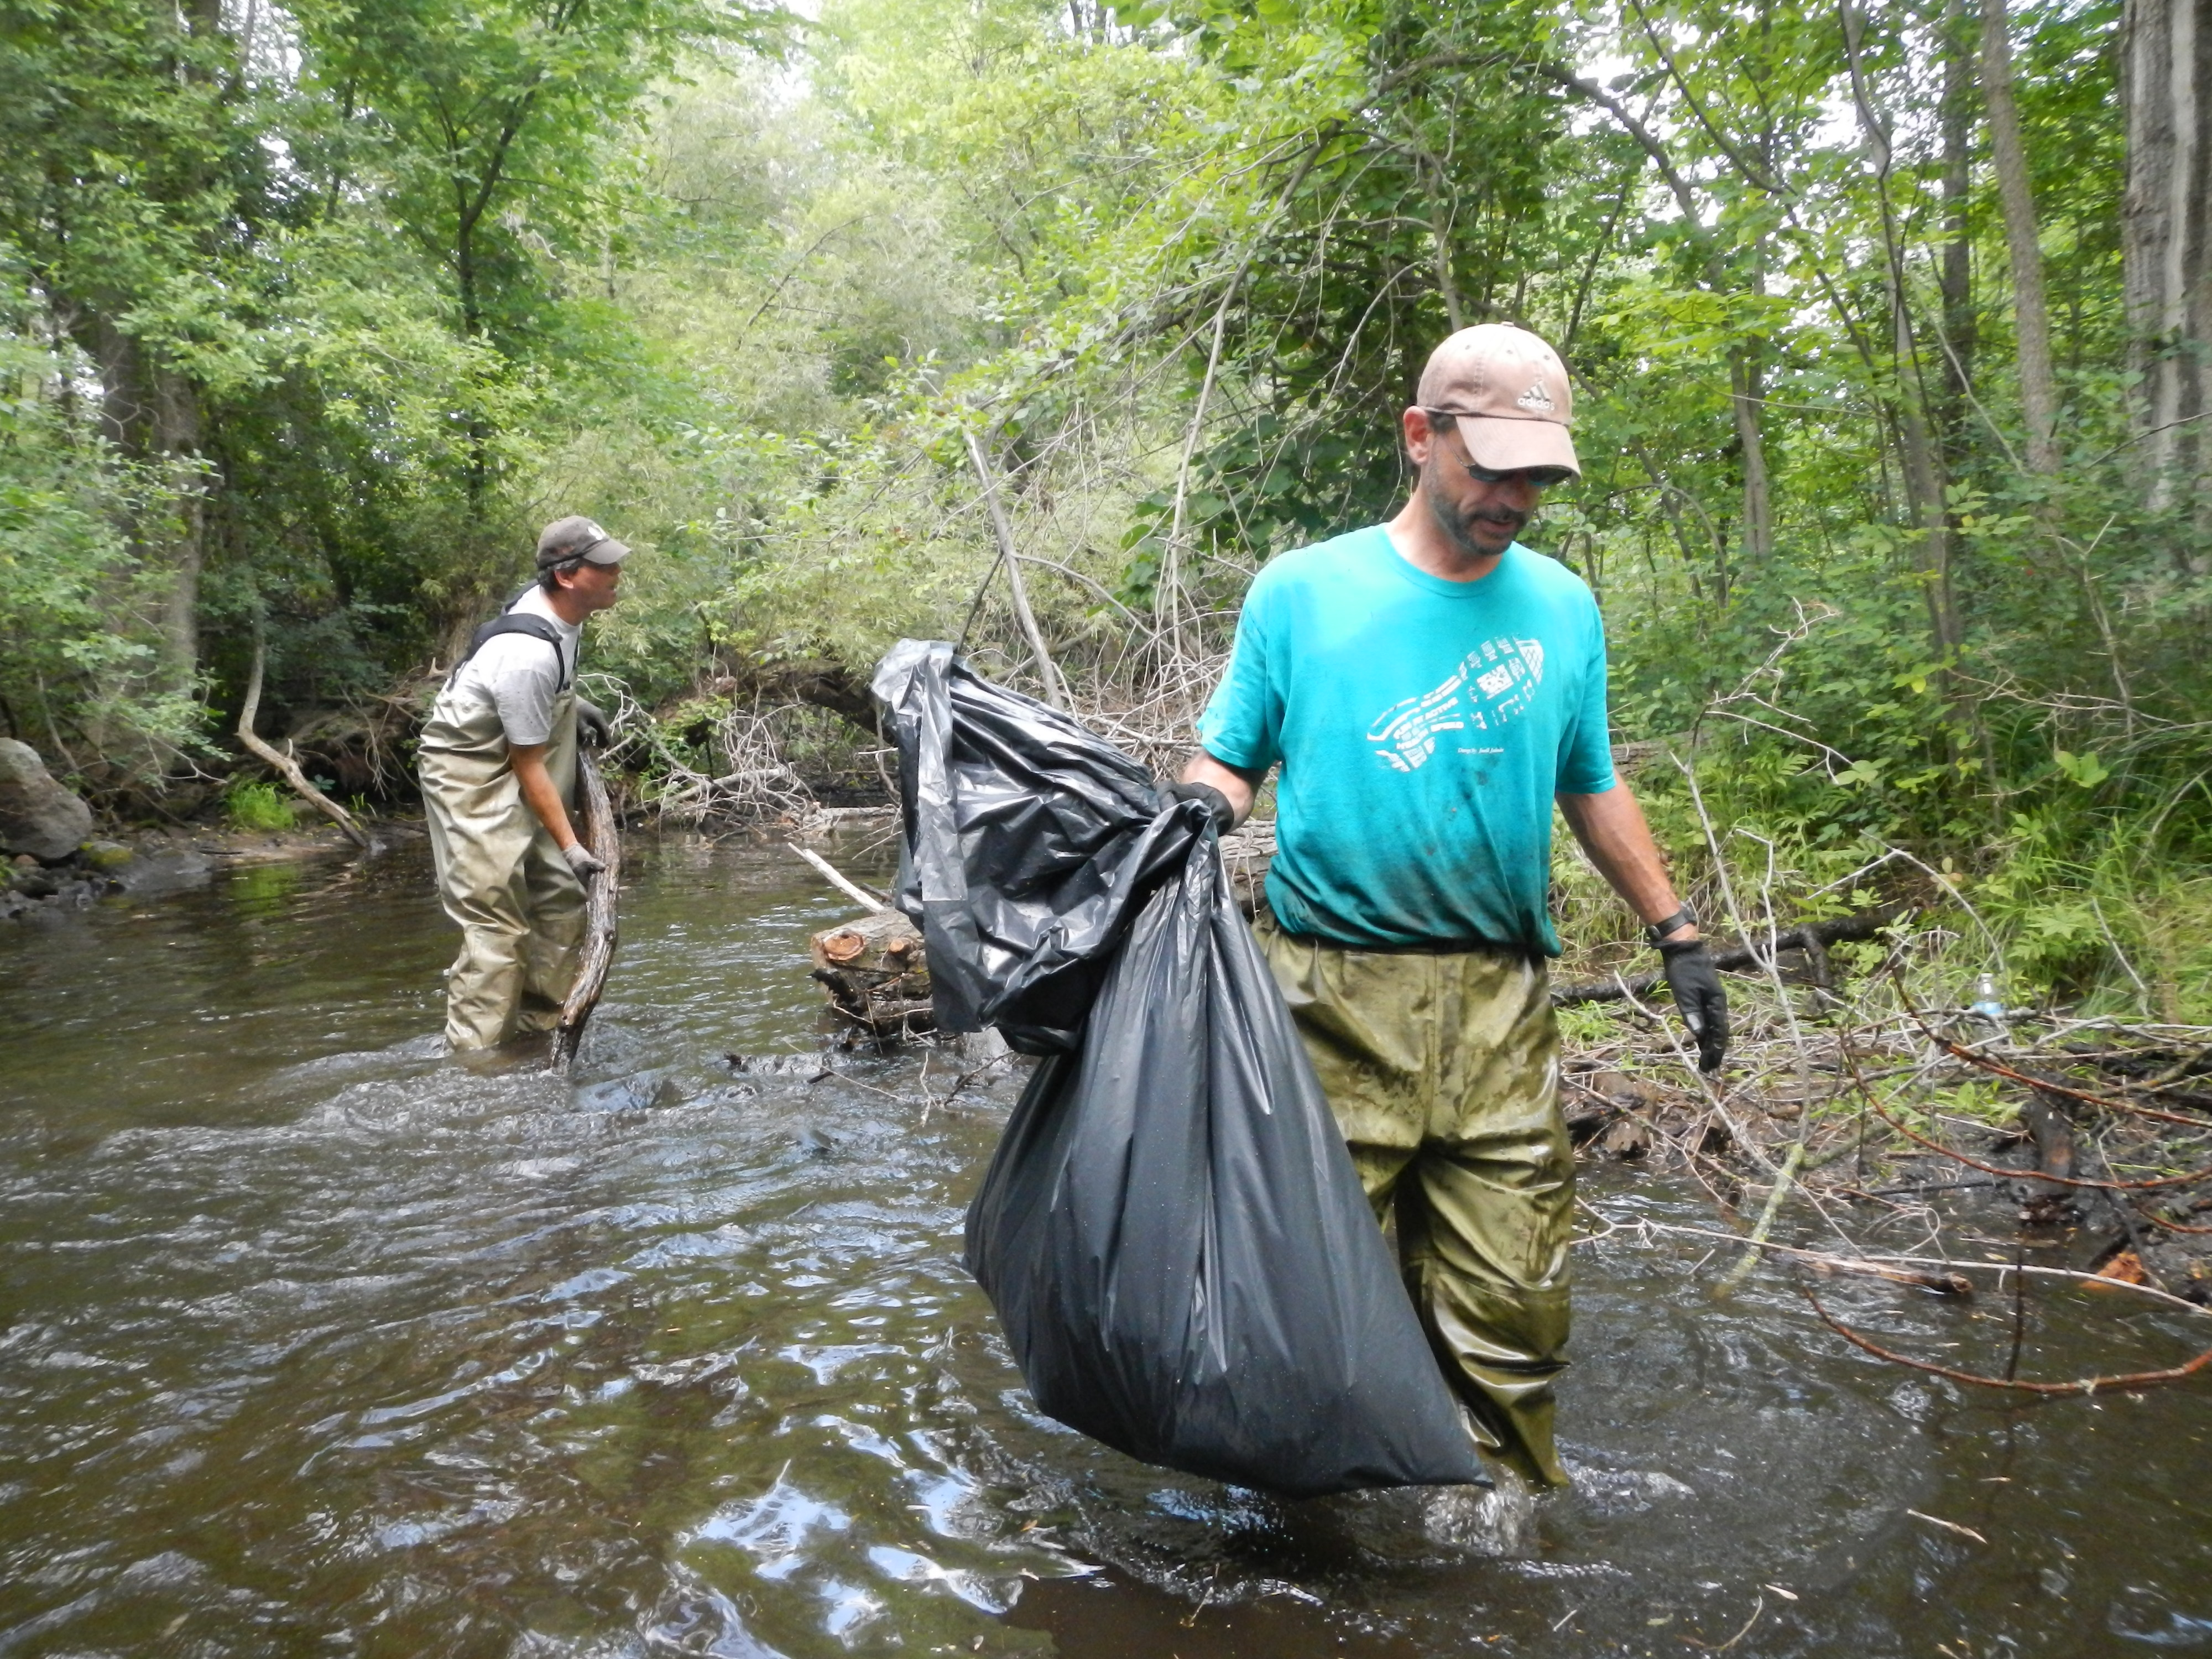 Jeff House and Dave Ostanak carry of debris and trash